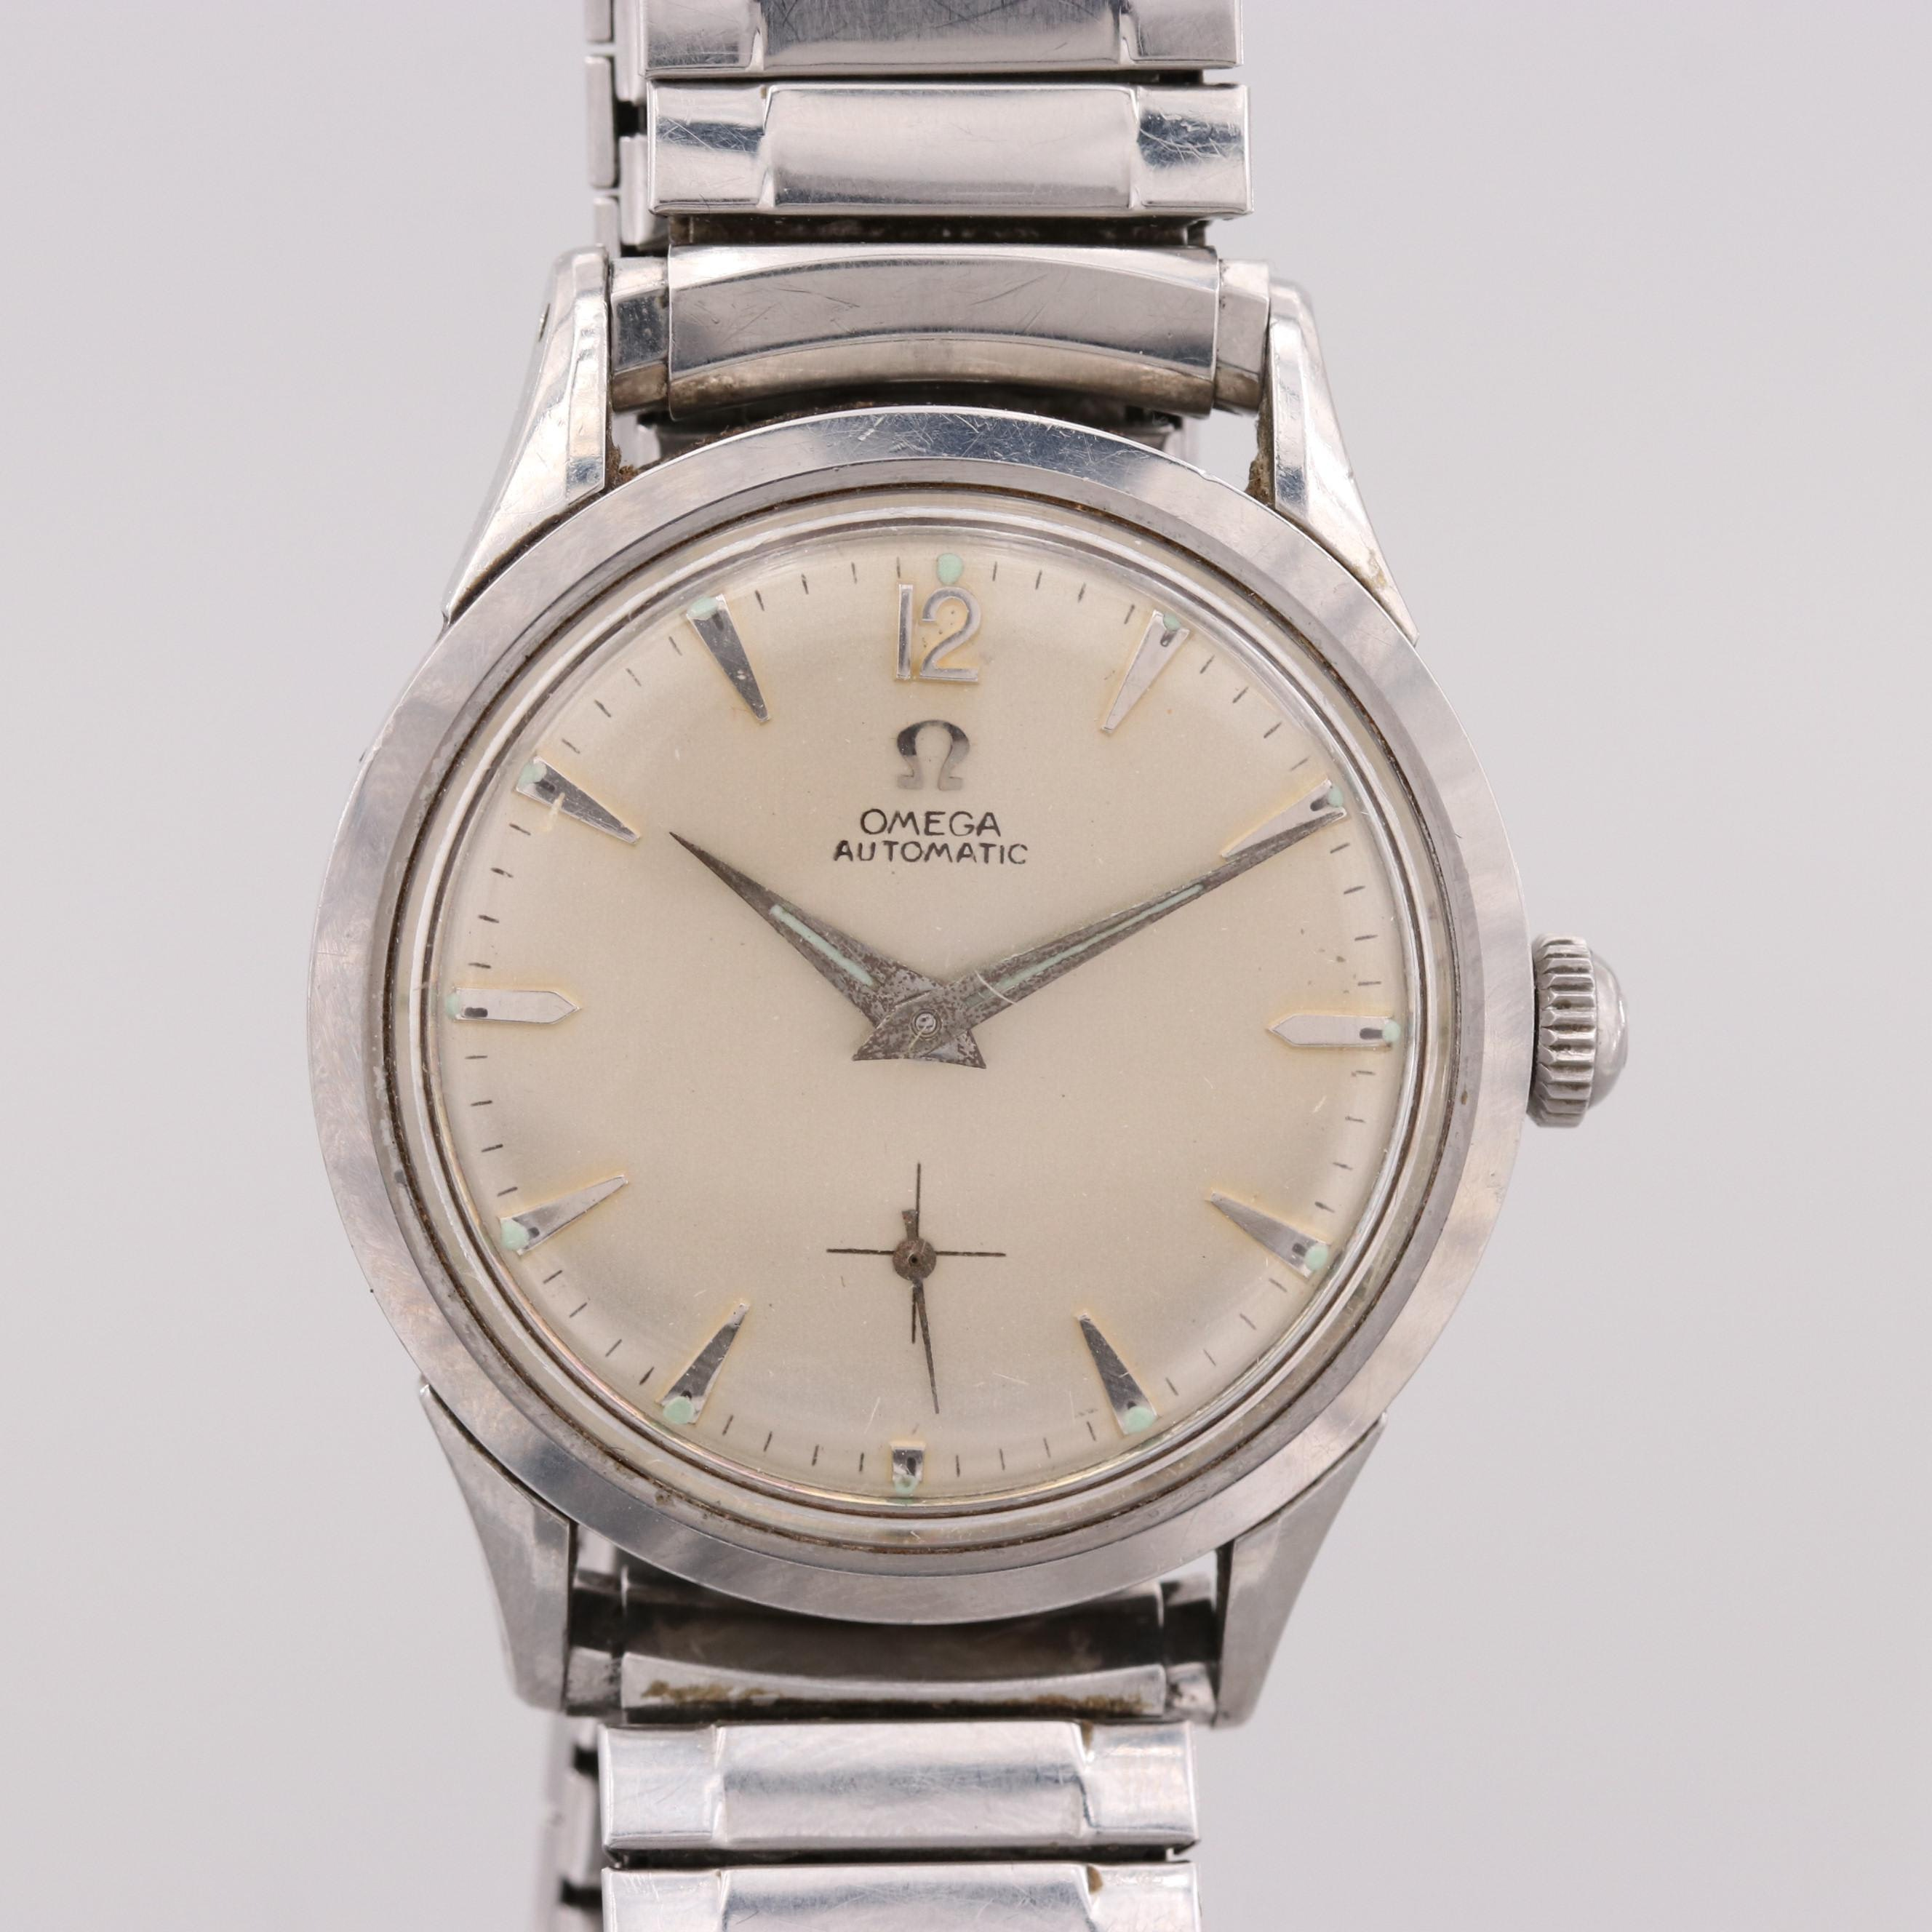 Omega Automatic Stainless Steel Wristwatch